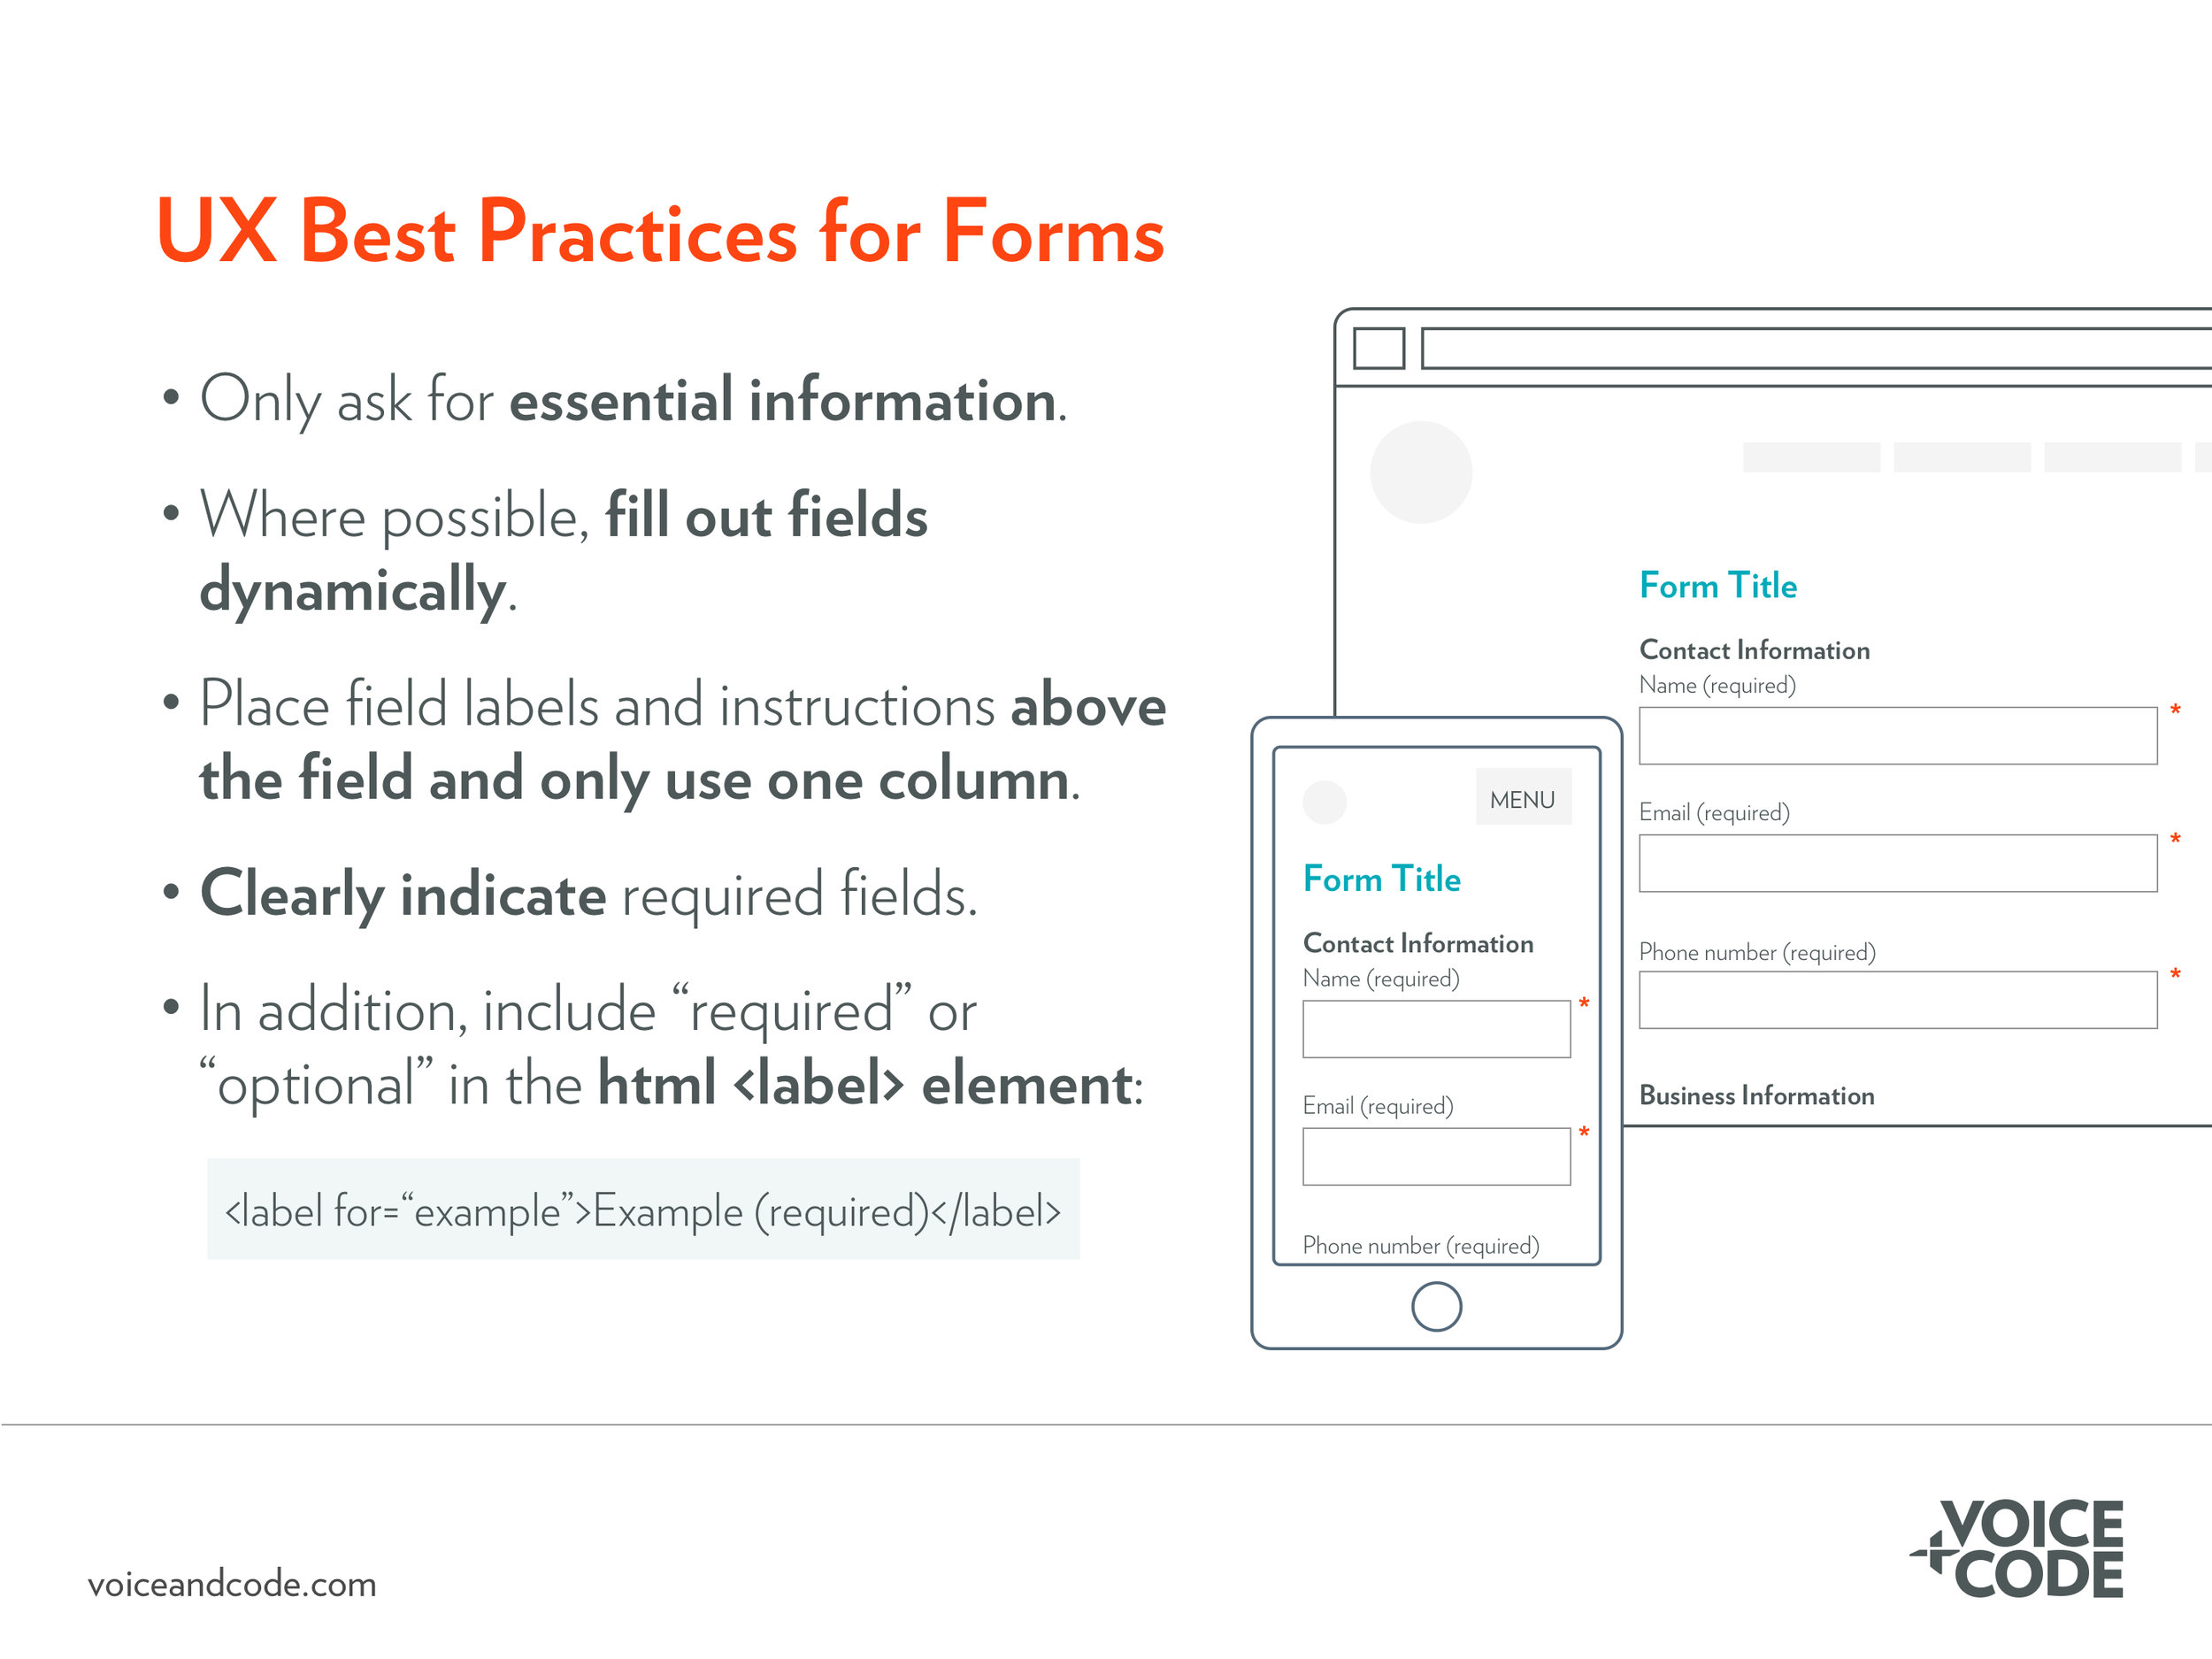 UX Best Practices for Forms